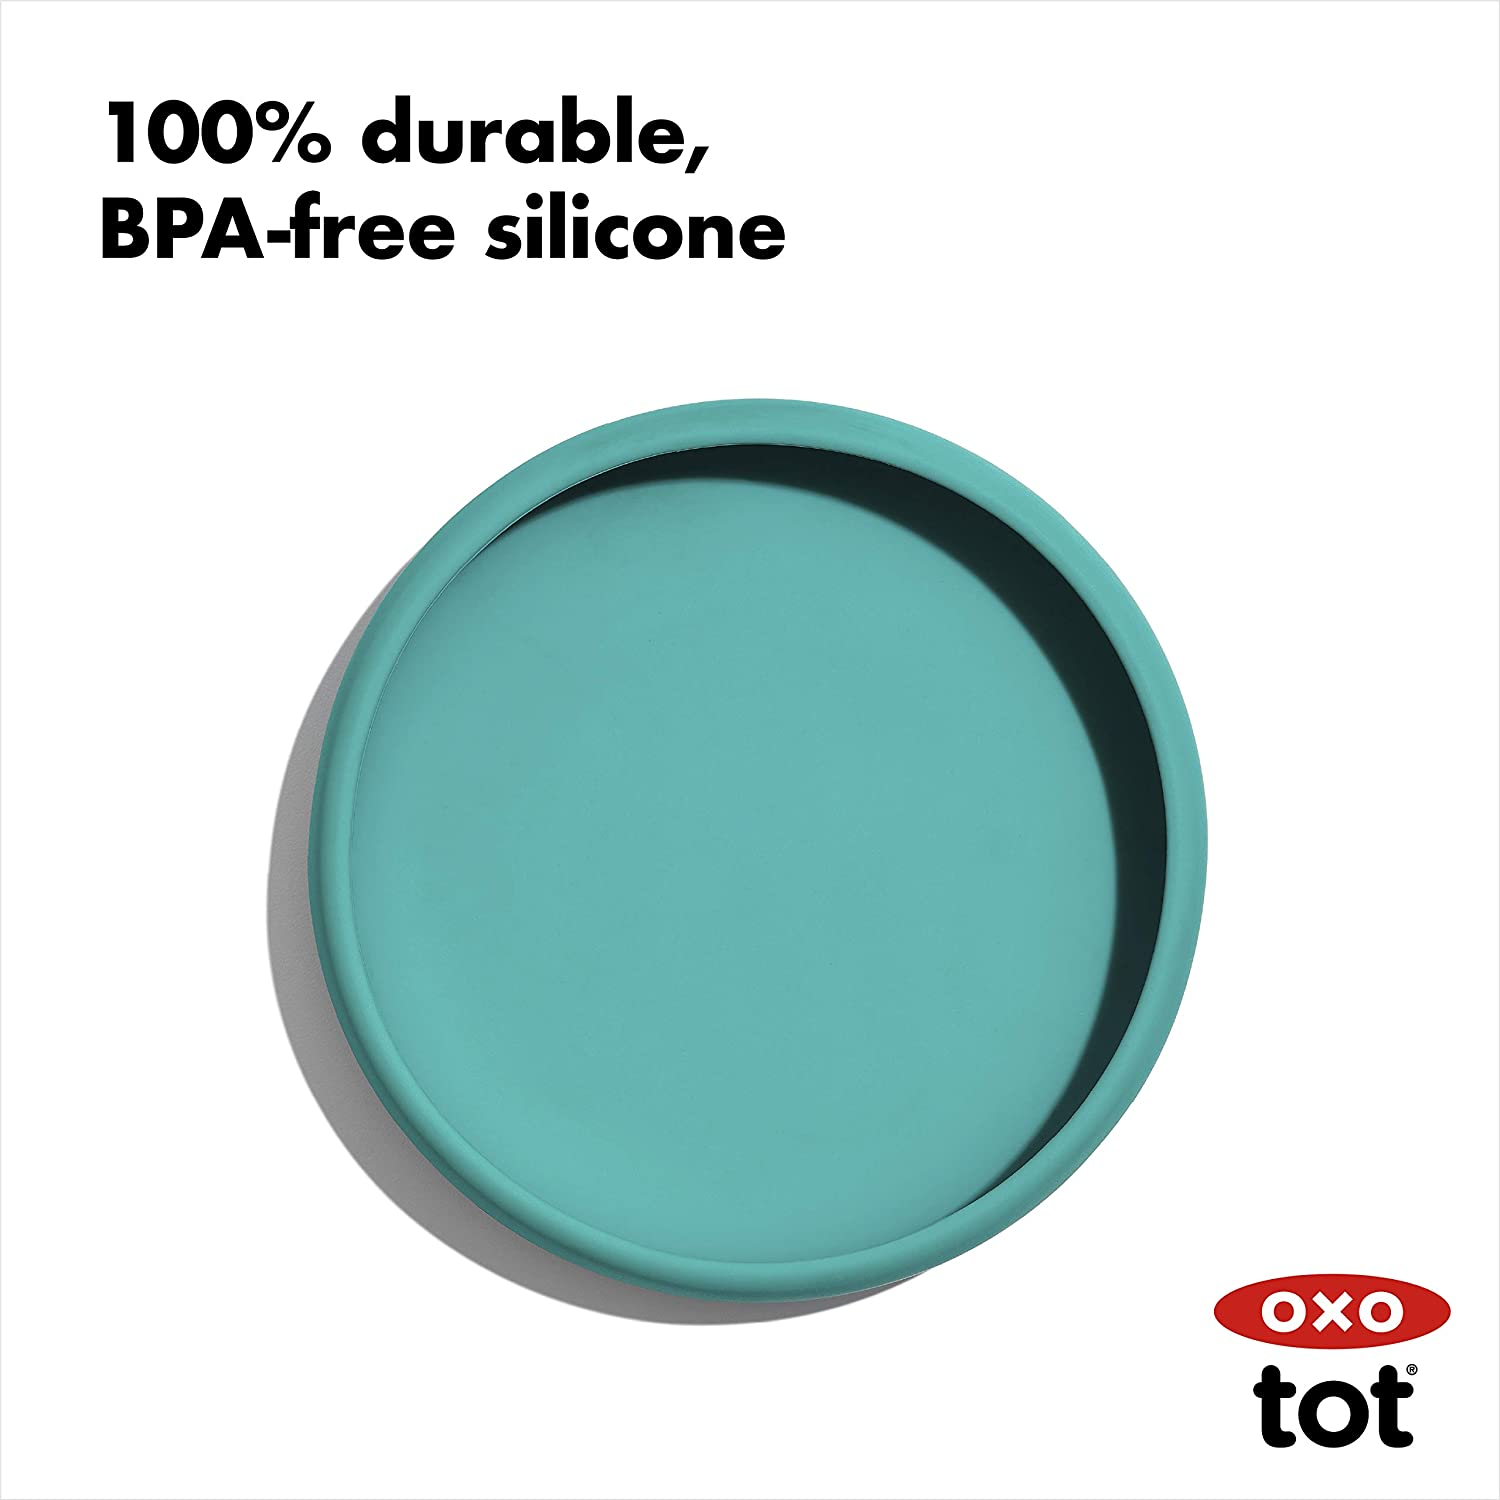 OXO Tot Silicone Plate Navy